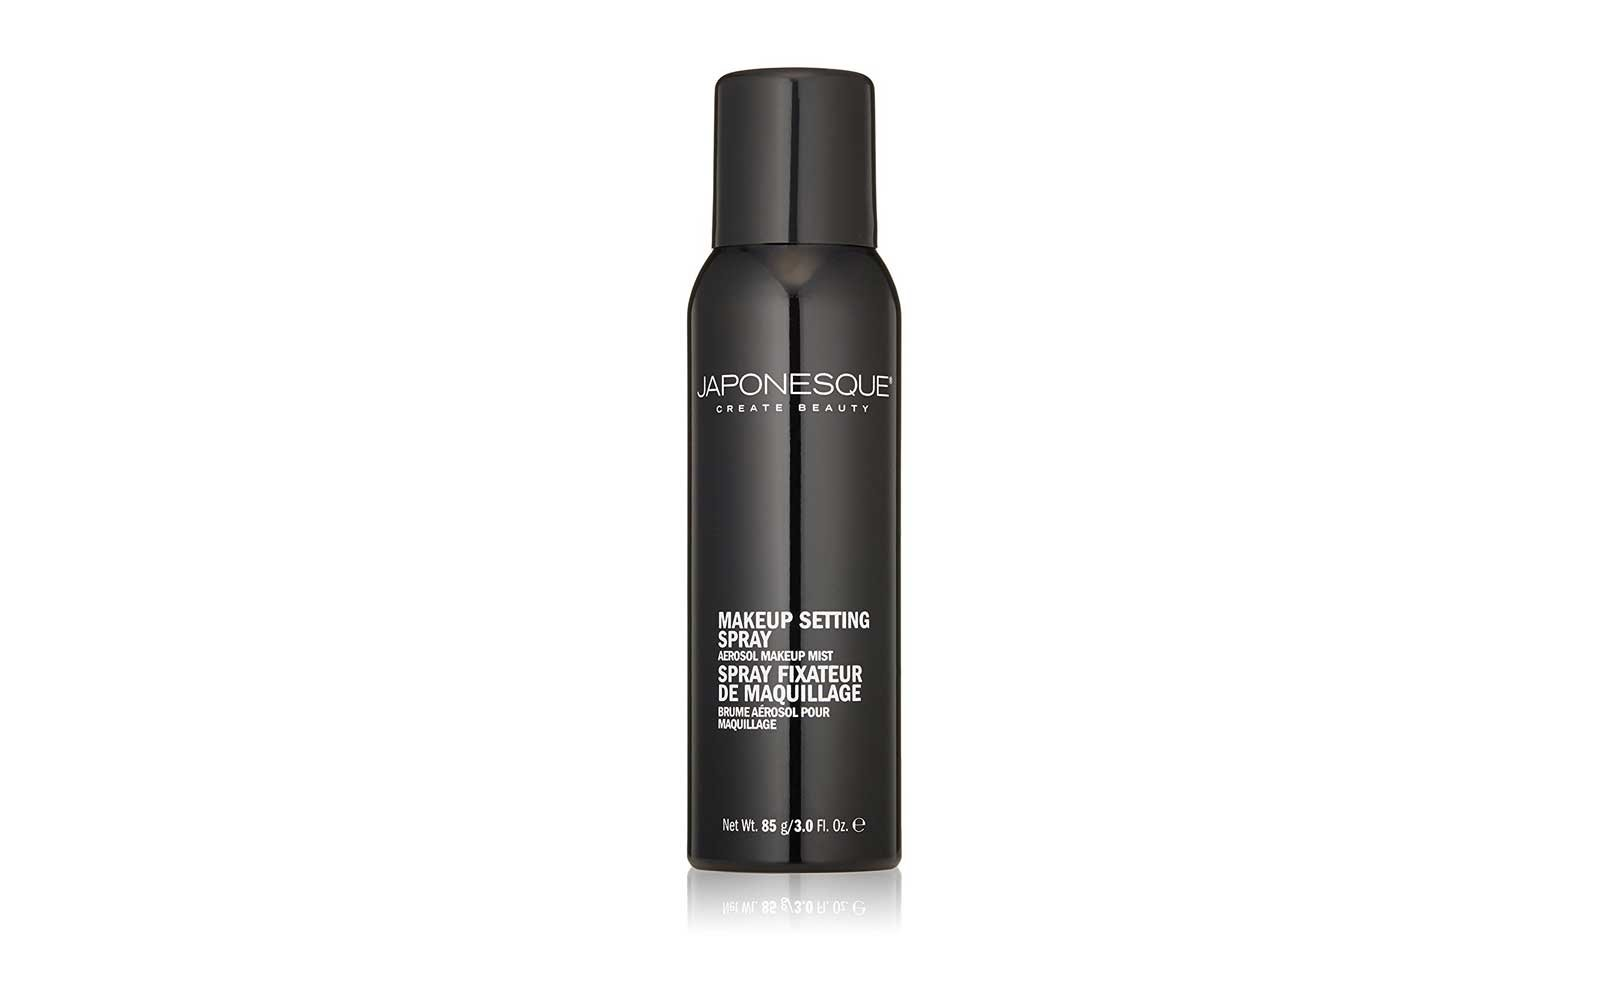 JAPONESQUE Makeup Setting Spray